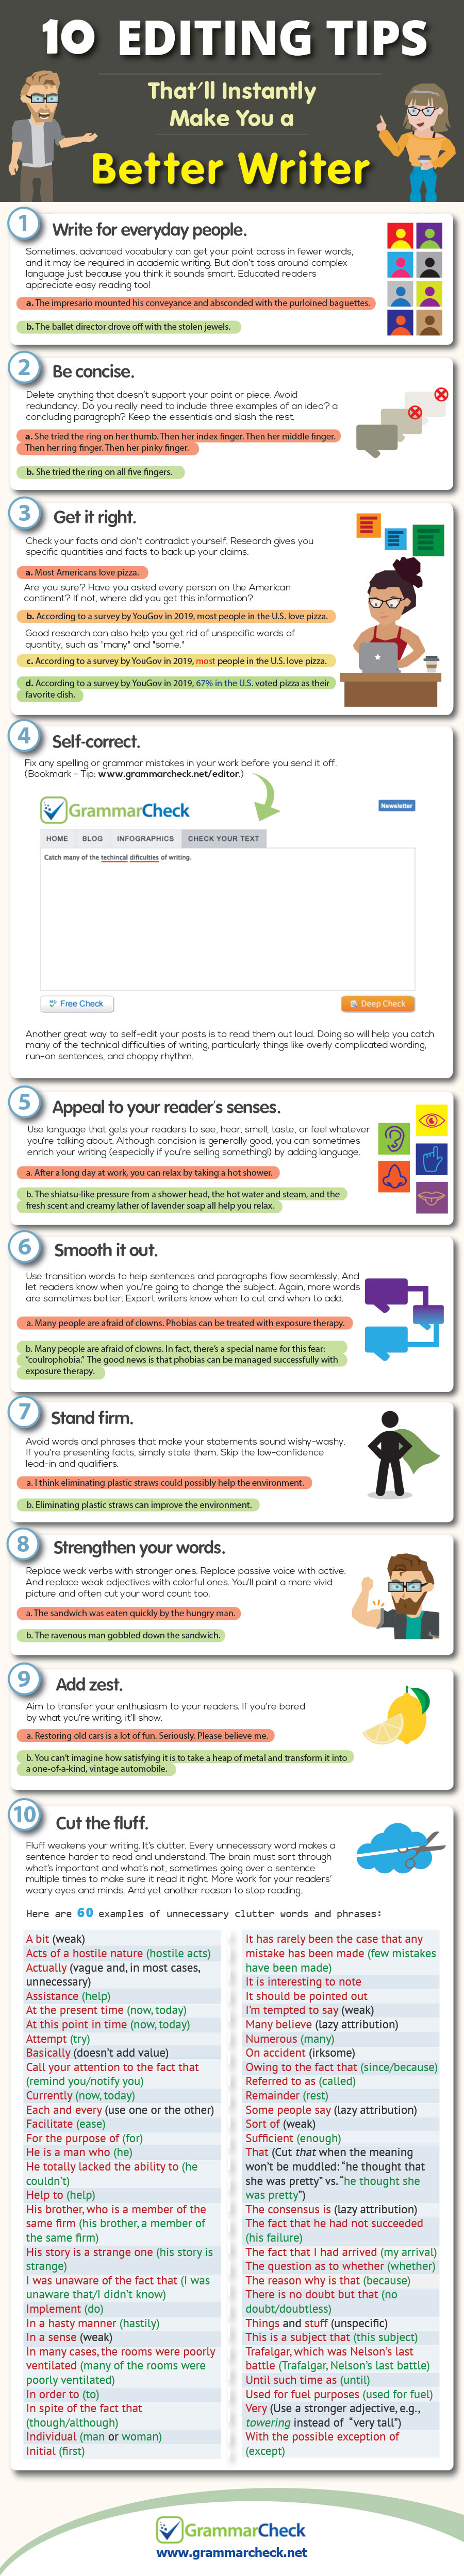 10 Editing Tips That'll Instantly Make You a Better Writer (Infographic)